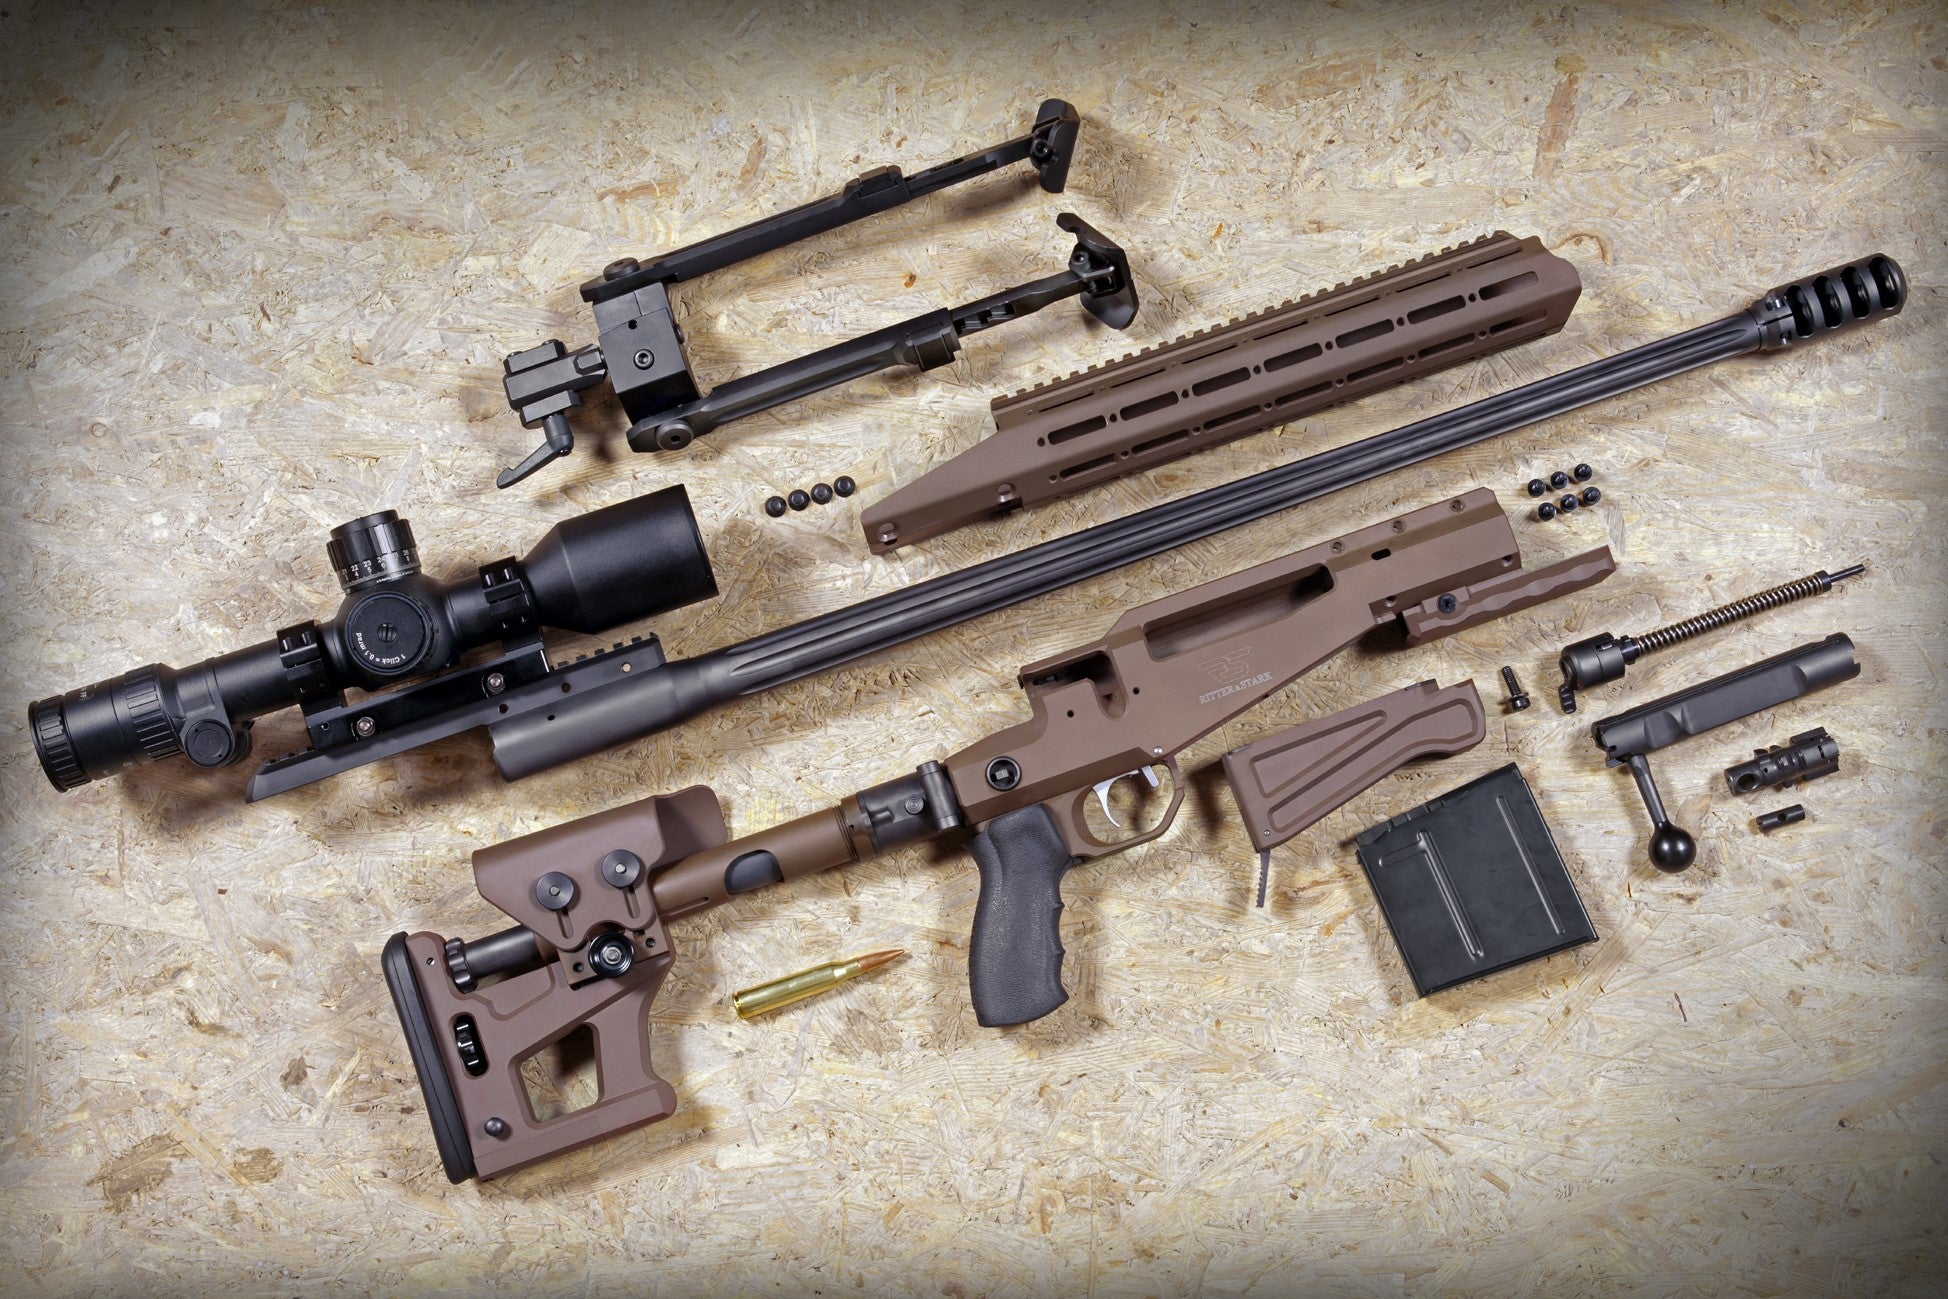 SX-1 Modular Tactical Rifle: Coming to the Range